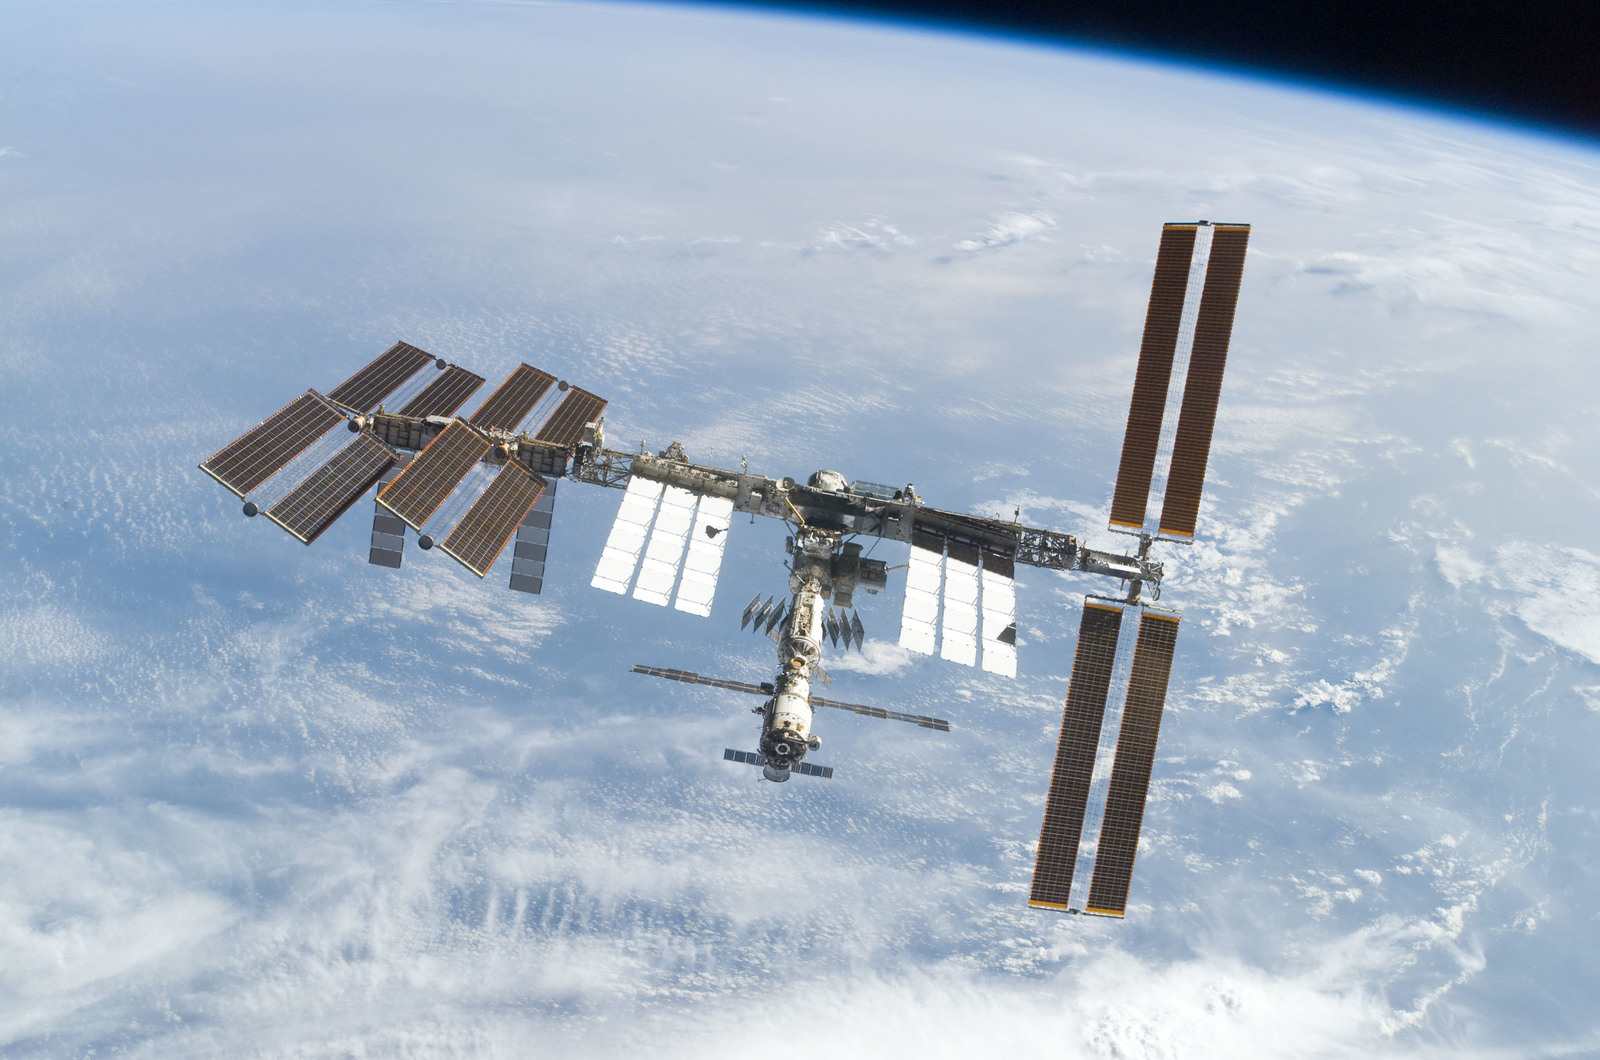 S122E010942 - STS-122 - View of ISS after STS-122 Undocking